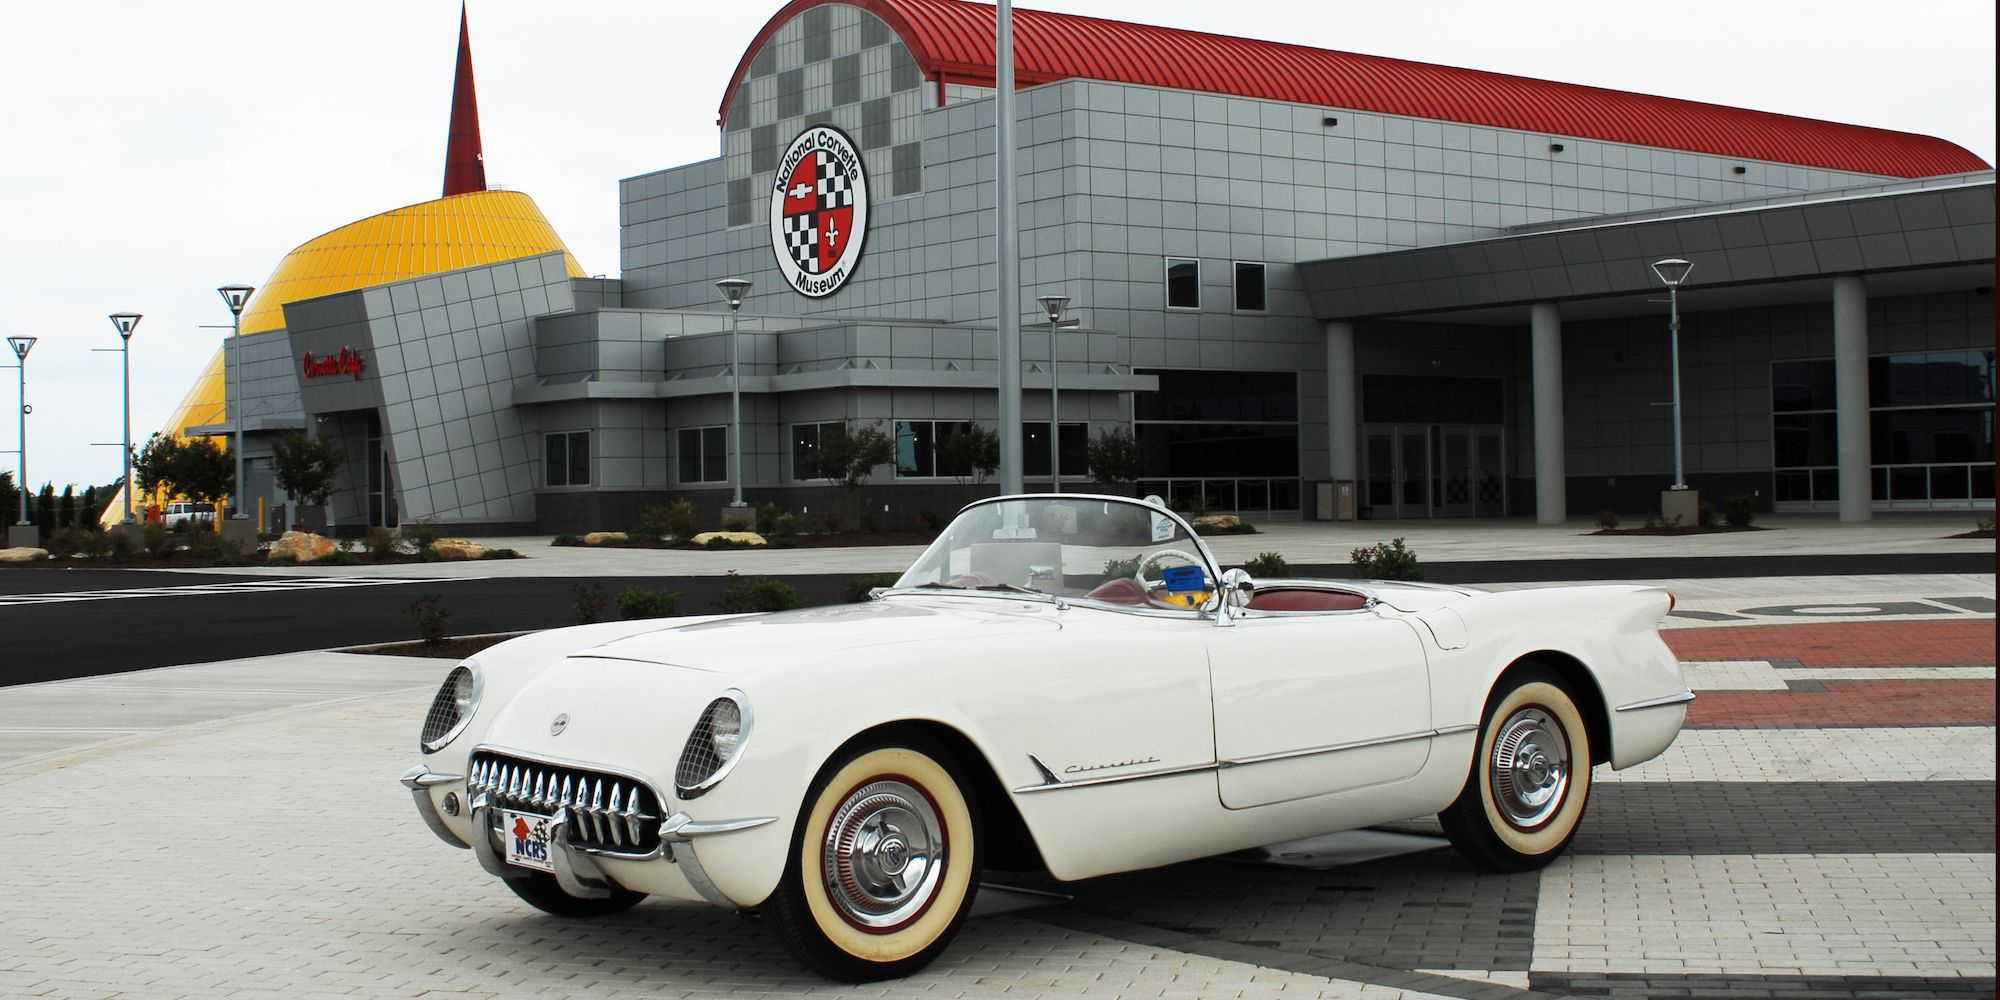 """<p>The <a href=""""http://www.corvettemuseum.org/"""">National Corvette Museum</a> might be most well-known for <a href=""""http://www.roadandtrack.com/new-cars/news/a7043/national-corvette-museum-sinkhole/"""">a giant sinkhole that opened up in the museum floor</a> in February 2014, taking eight 'Vettes with it. That's unfortunate because it has the best collection of Corvettes in the world. Some of the cars destroyed, like the millionth Corvette made, <a href=""""http://www.roadandtrack.com/car-culture/classic-cars/news/g6421/millionth-corvette-destroyed-in-sinkhole-completely-restored/?"""">have since been restored</a>.</p>"""